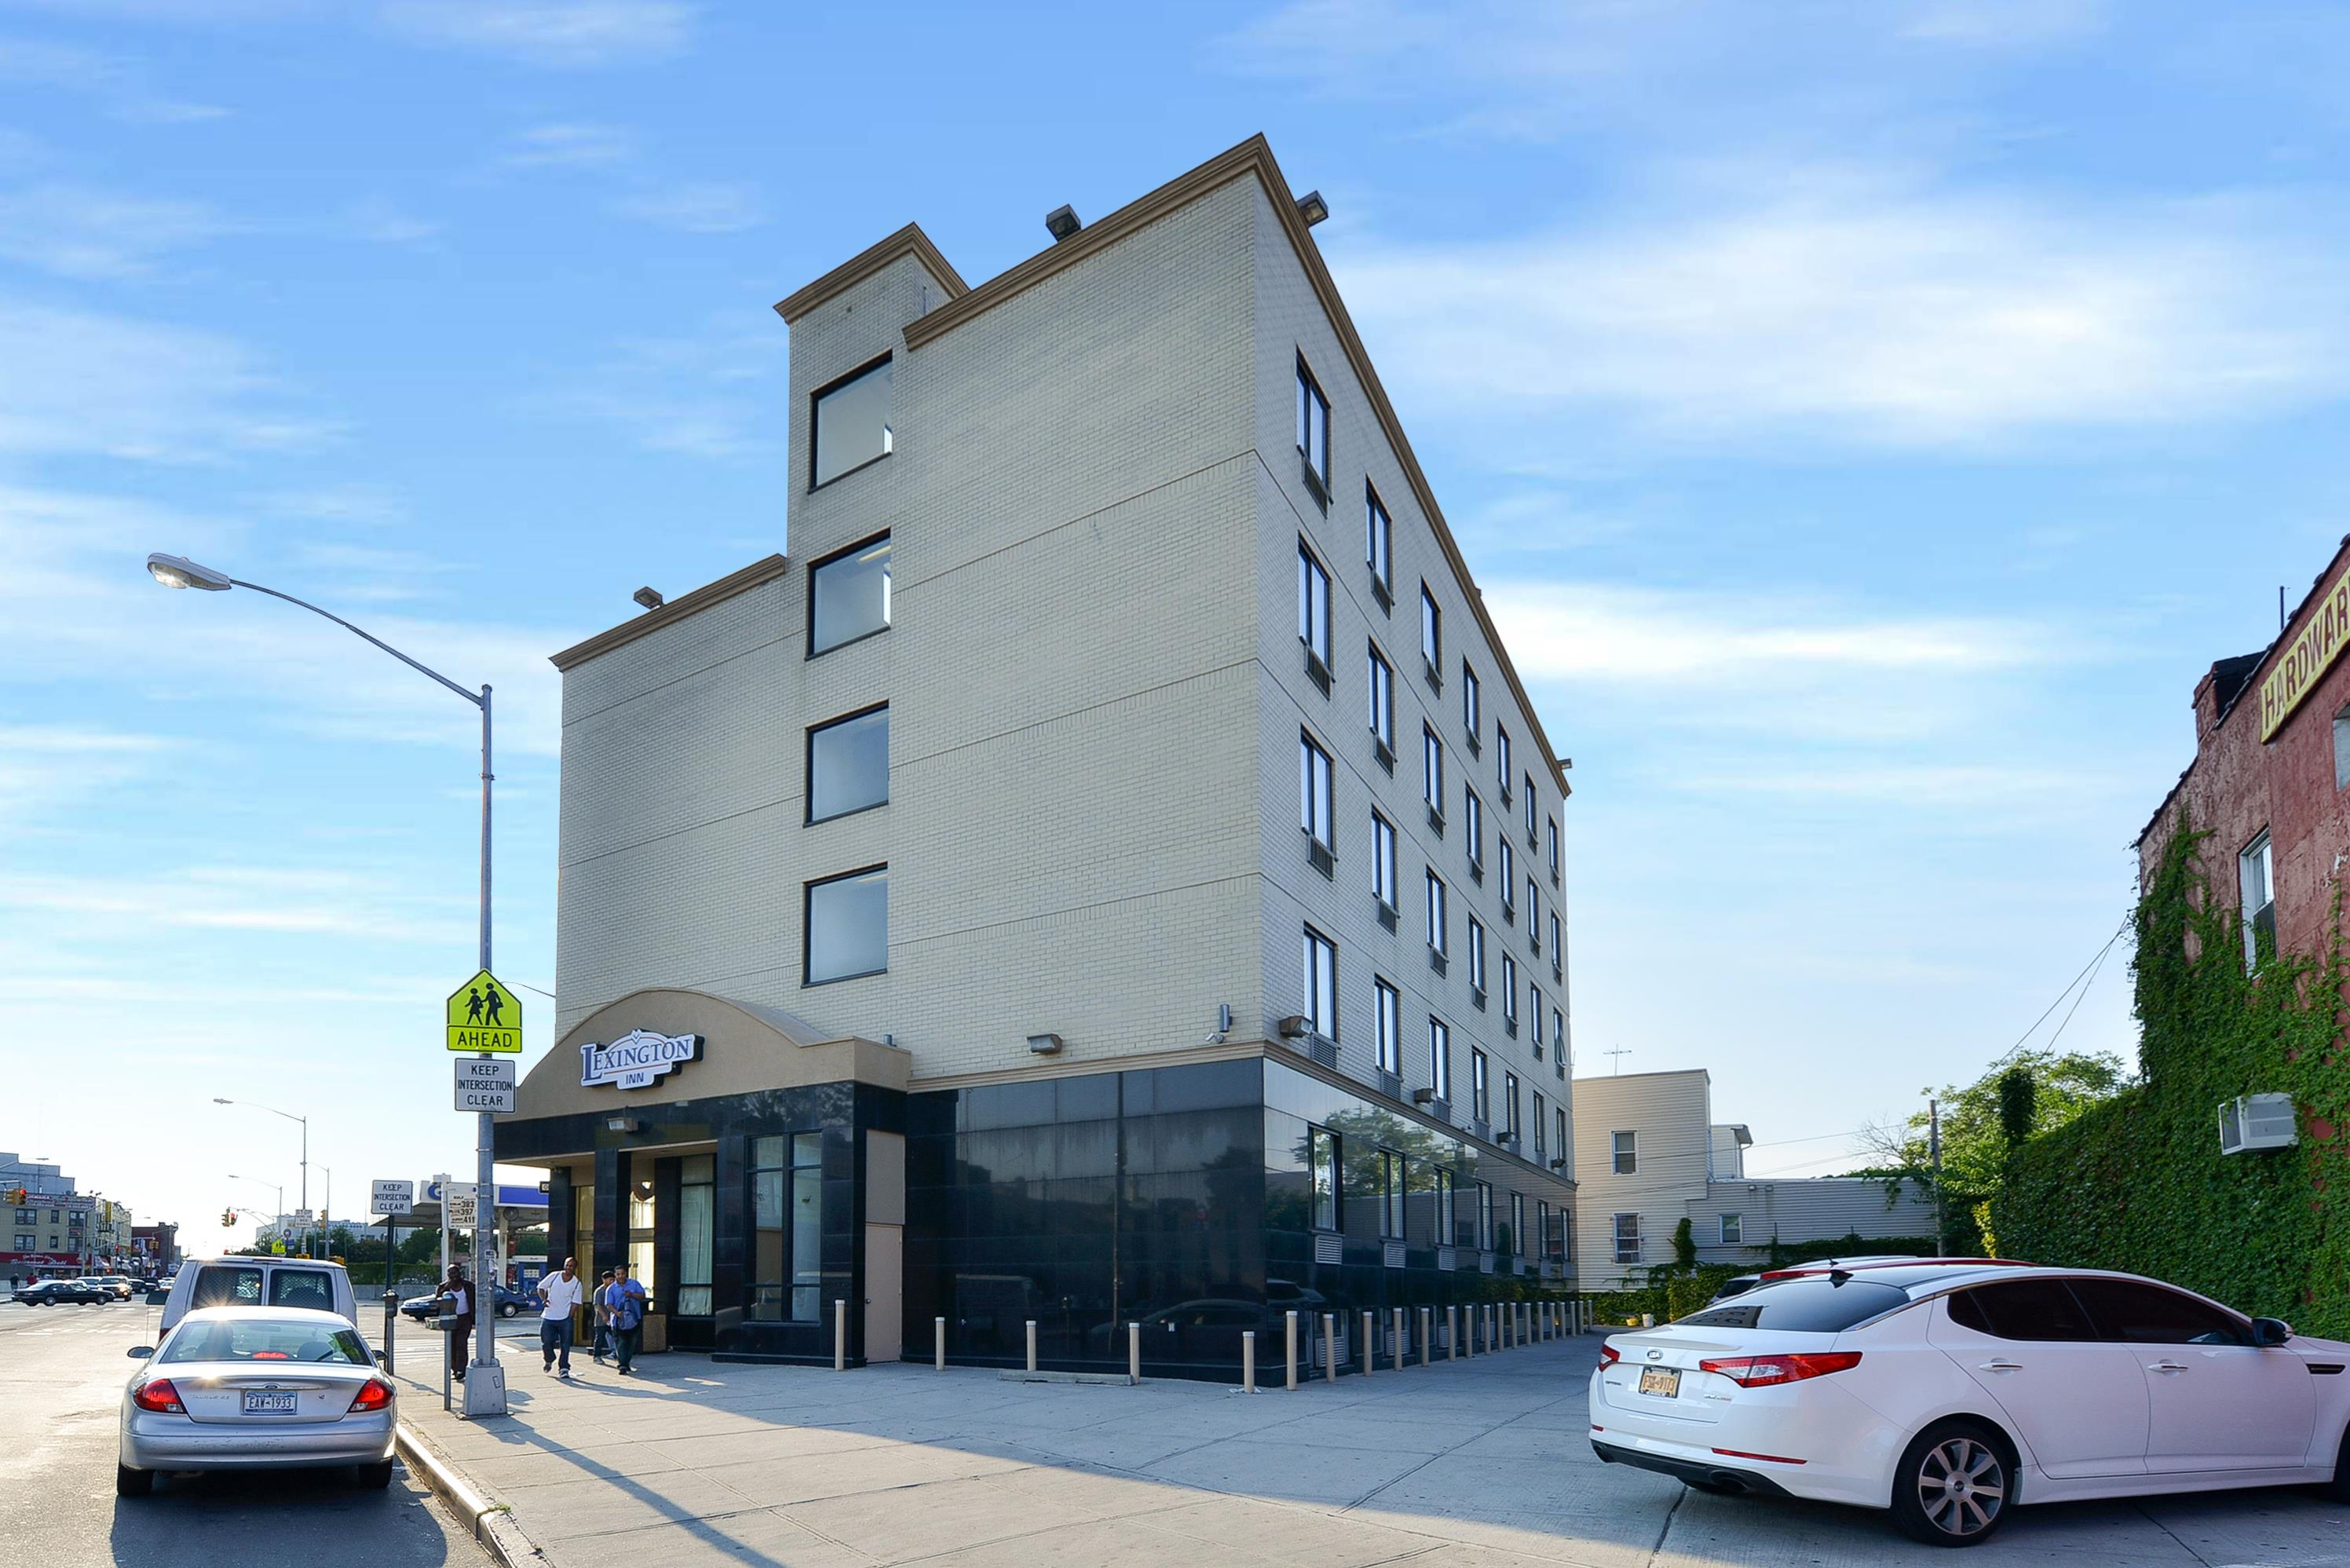 Lexington inn at jfk airport jamaica new york ny for Hotels near jf kennedy airport